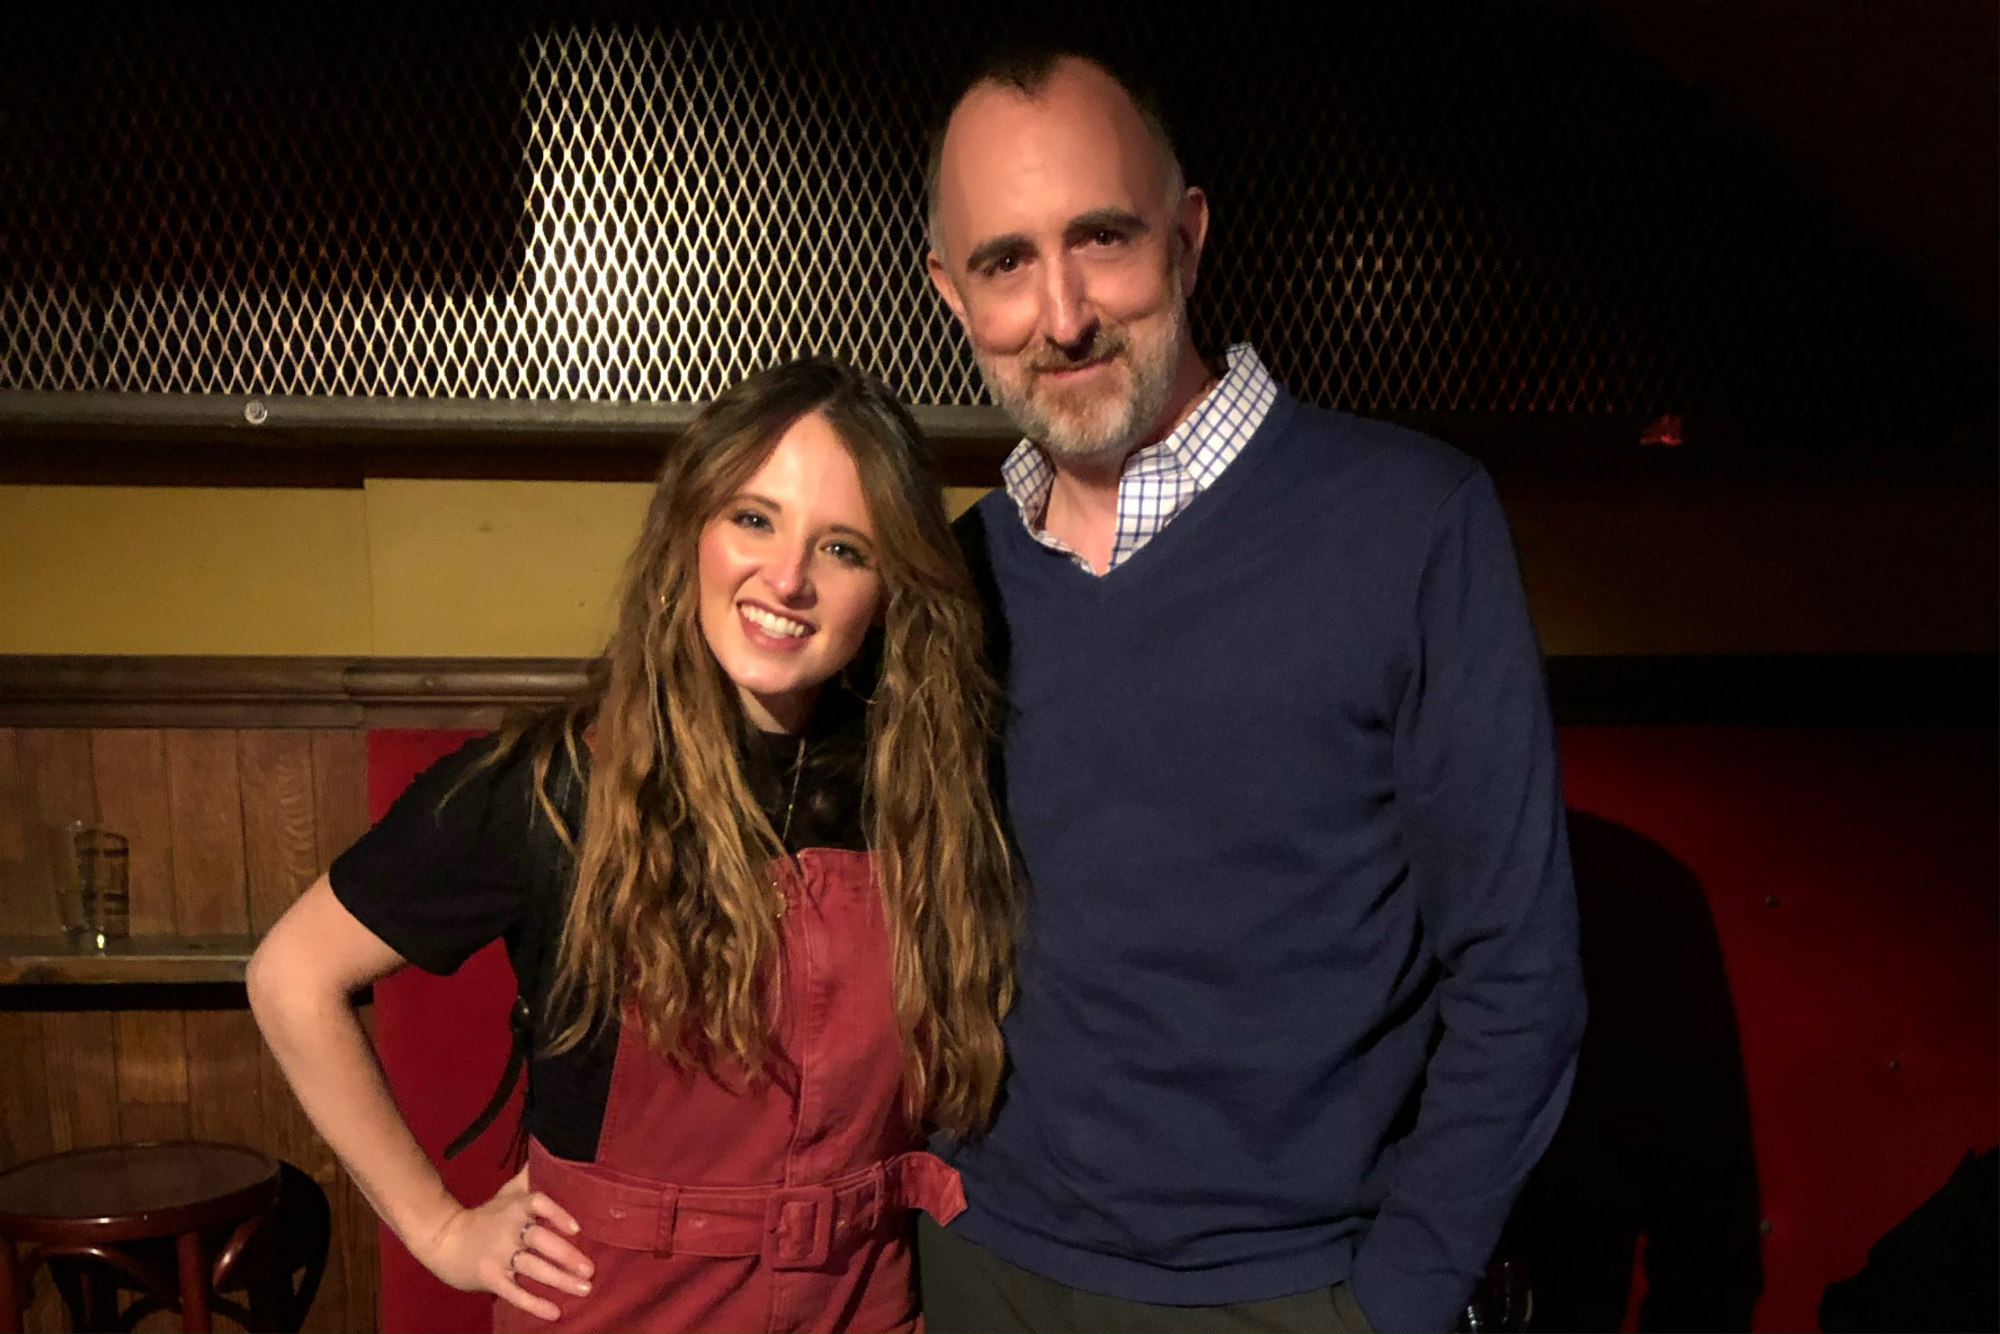 Emily Hackett with The Country Scene's Shawn St. Jean at Rockwood Music Hall, March 18, 2019